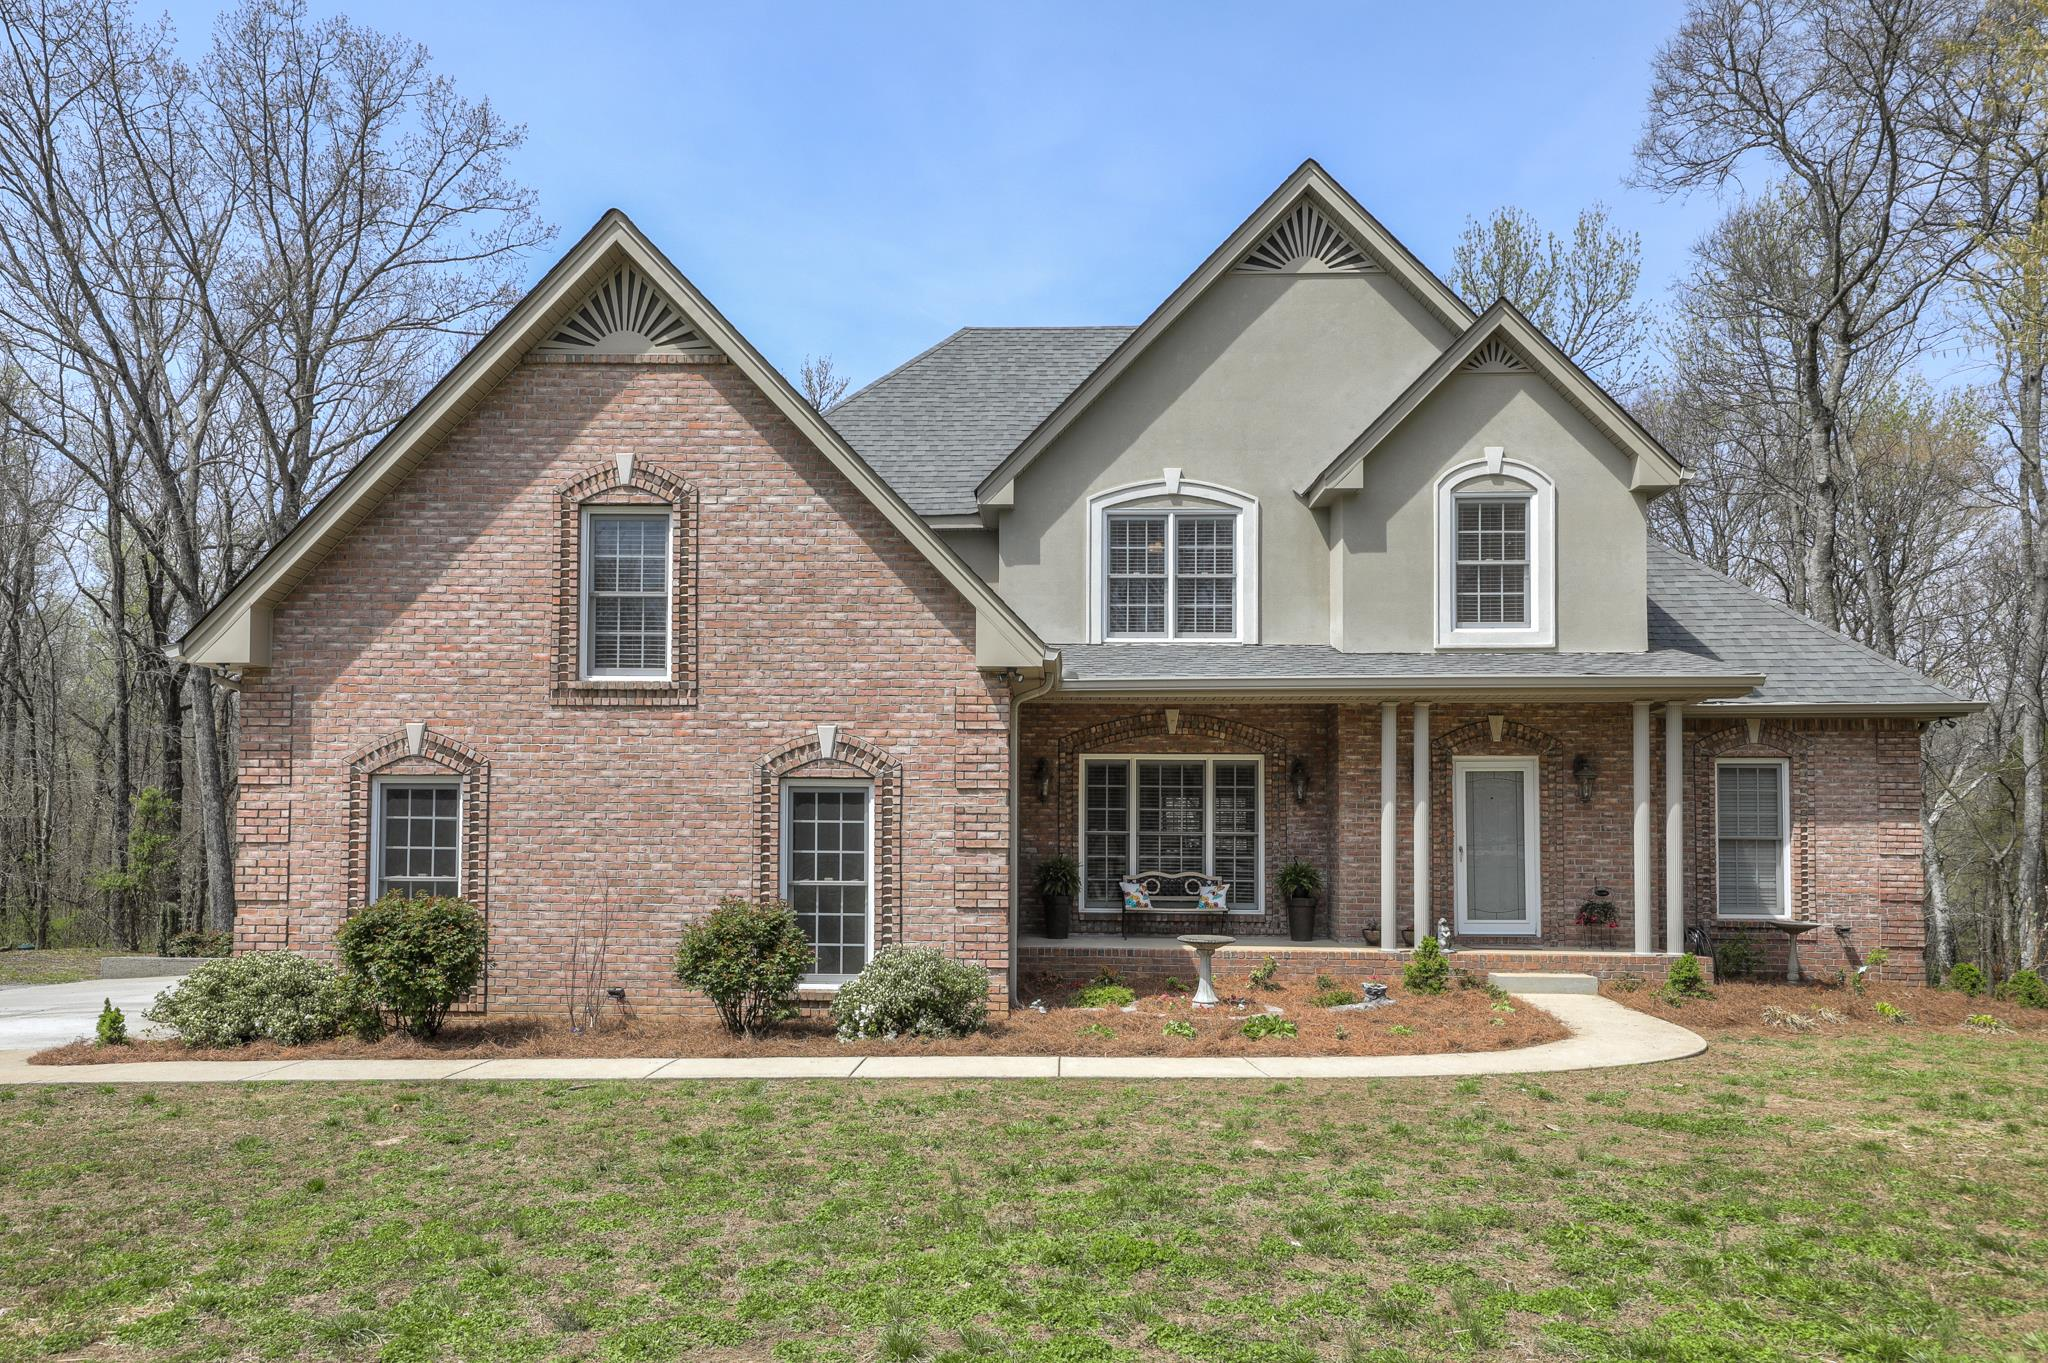 968 Bass Ln, Mount Juliet, Tennessee